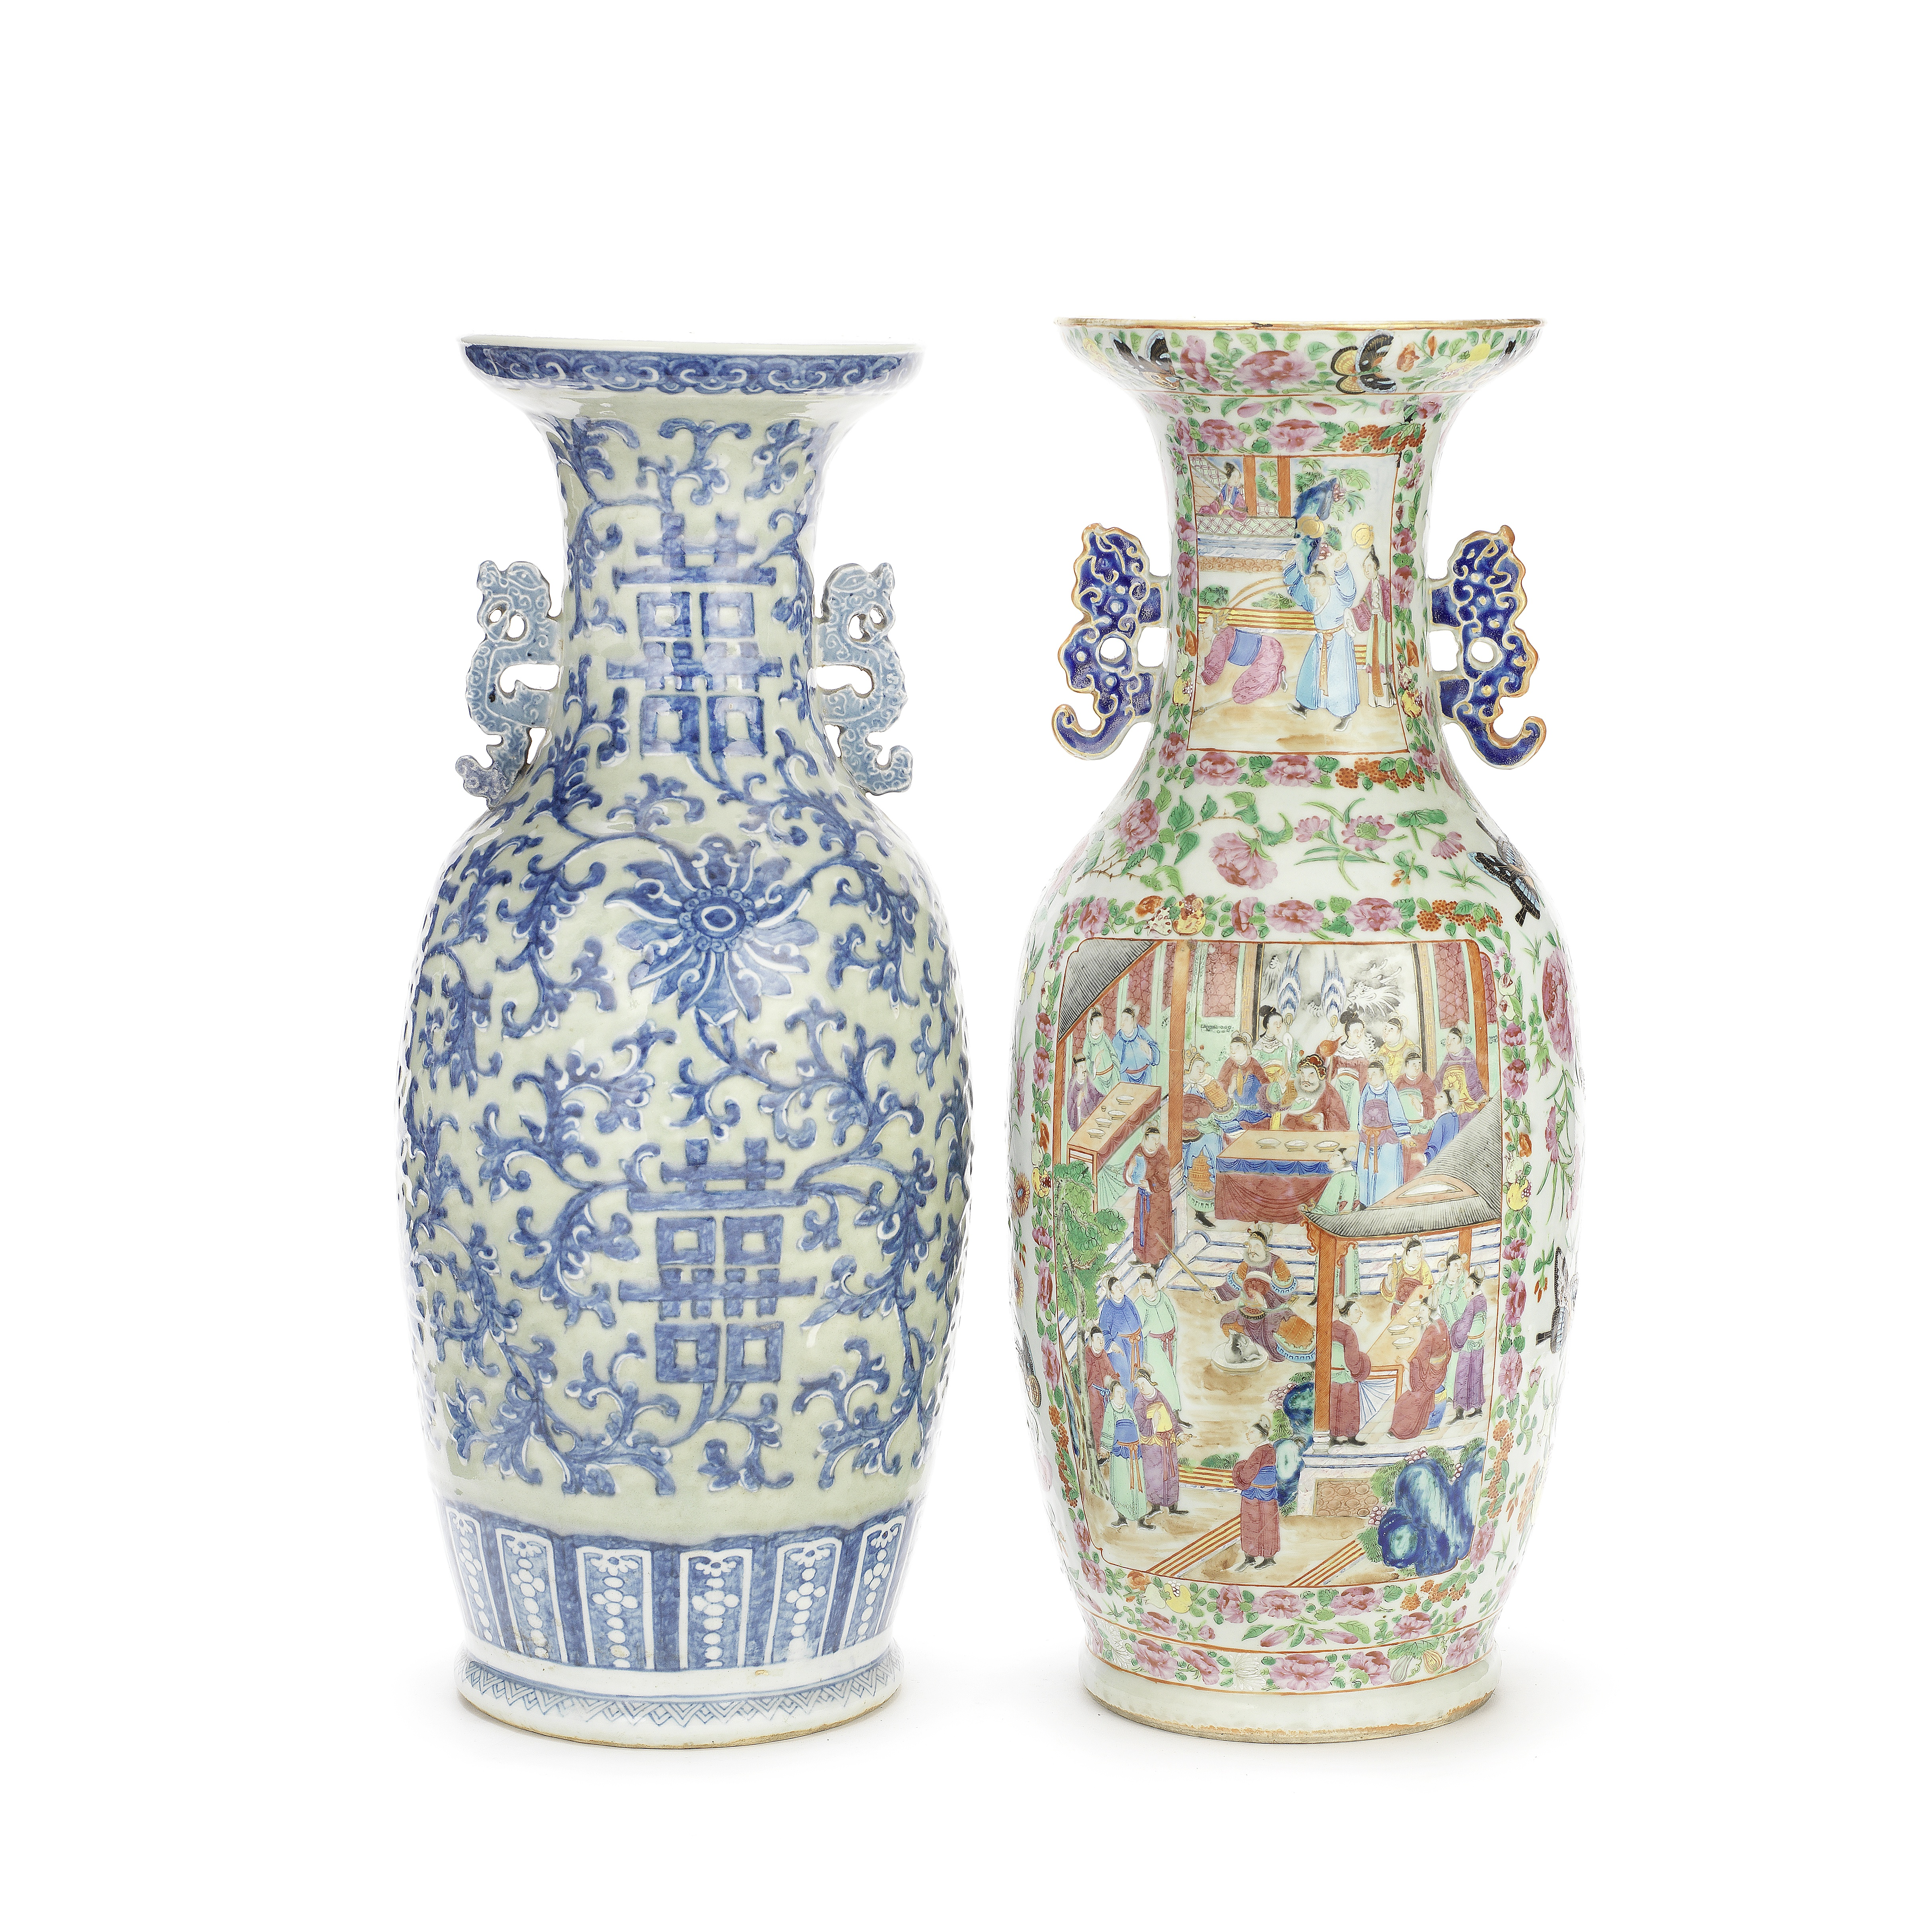 A CANTON FAMILLE ROSE VASE AND A CELADON-GROUND VASE Late 19th century (2)